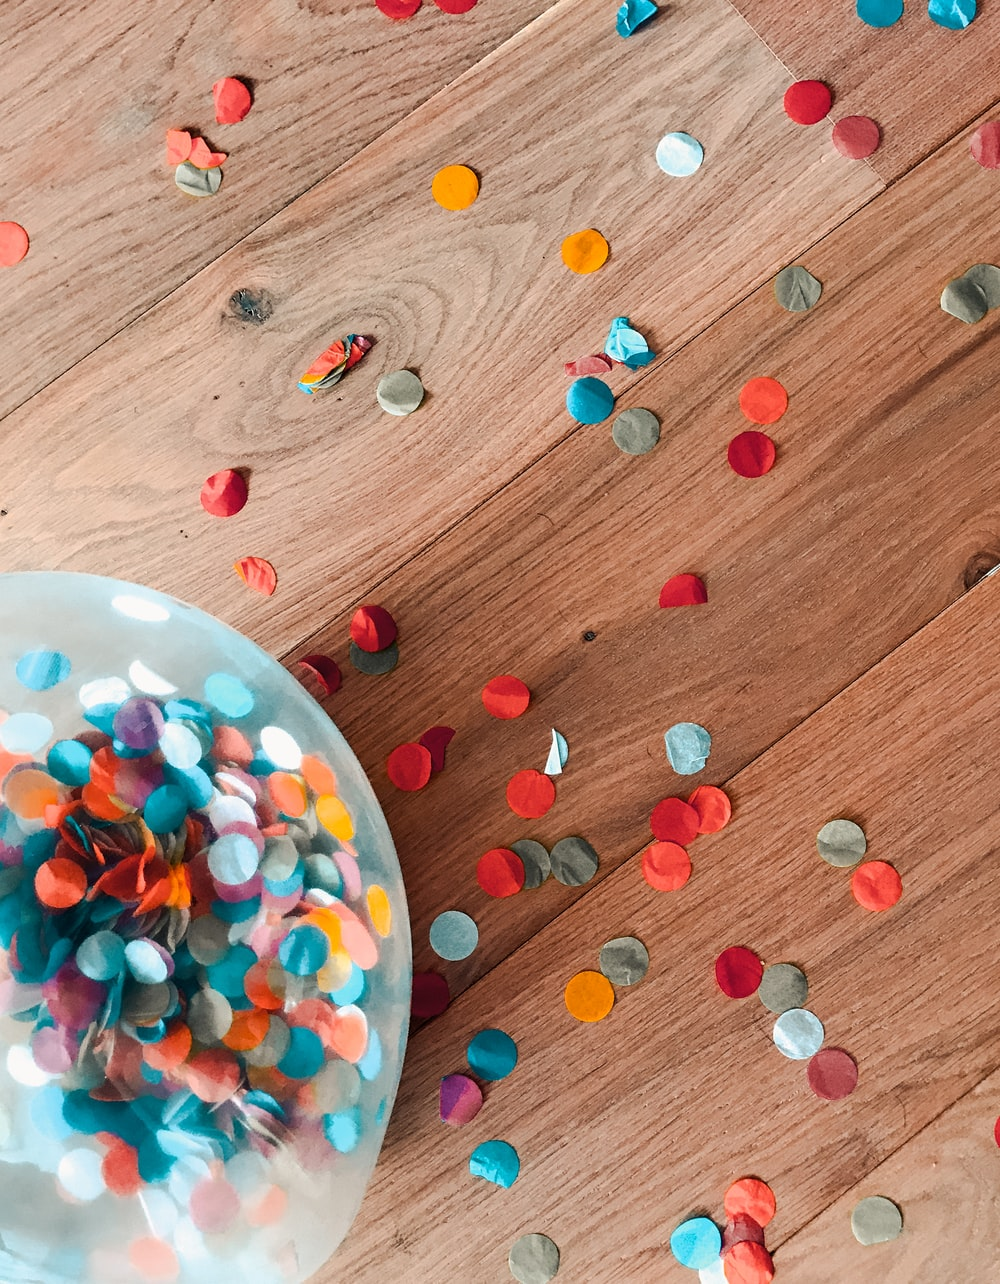 assorted-color of sprinkle dots on brown floor